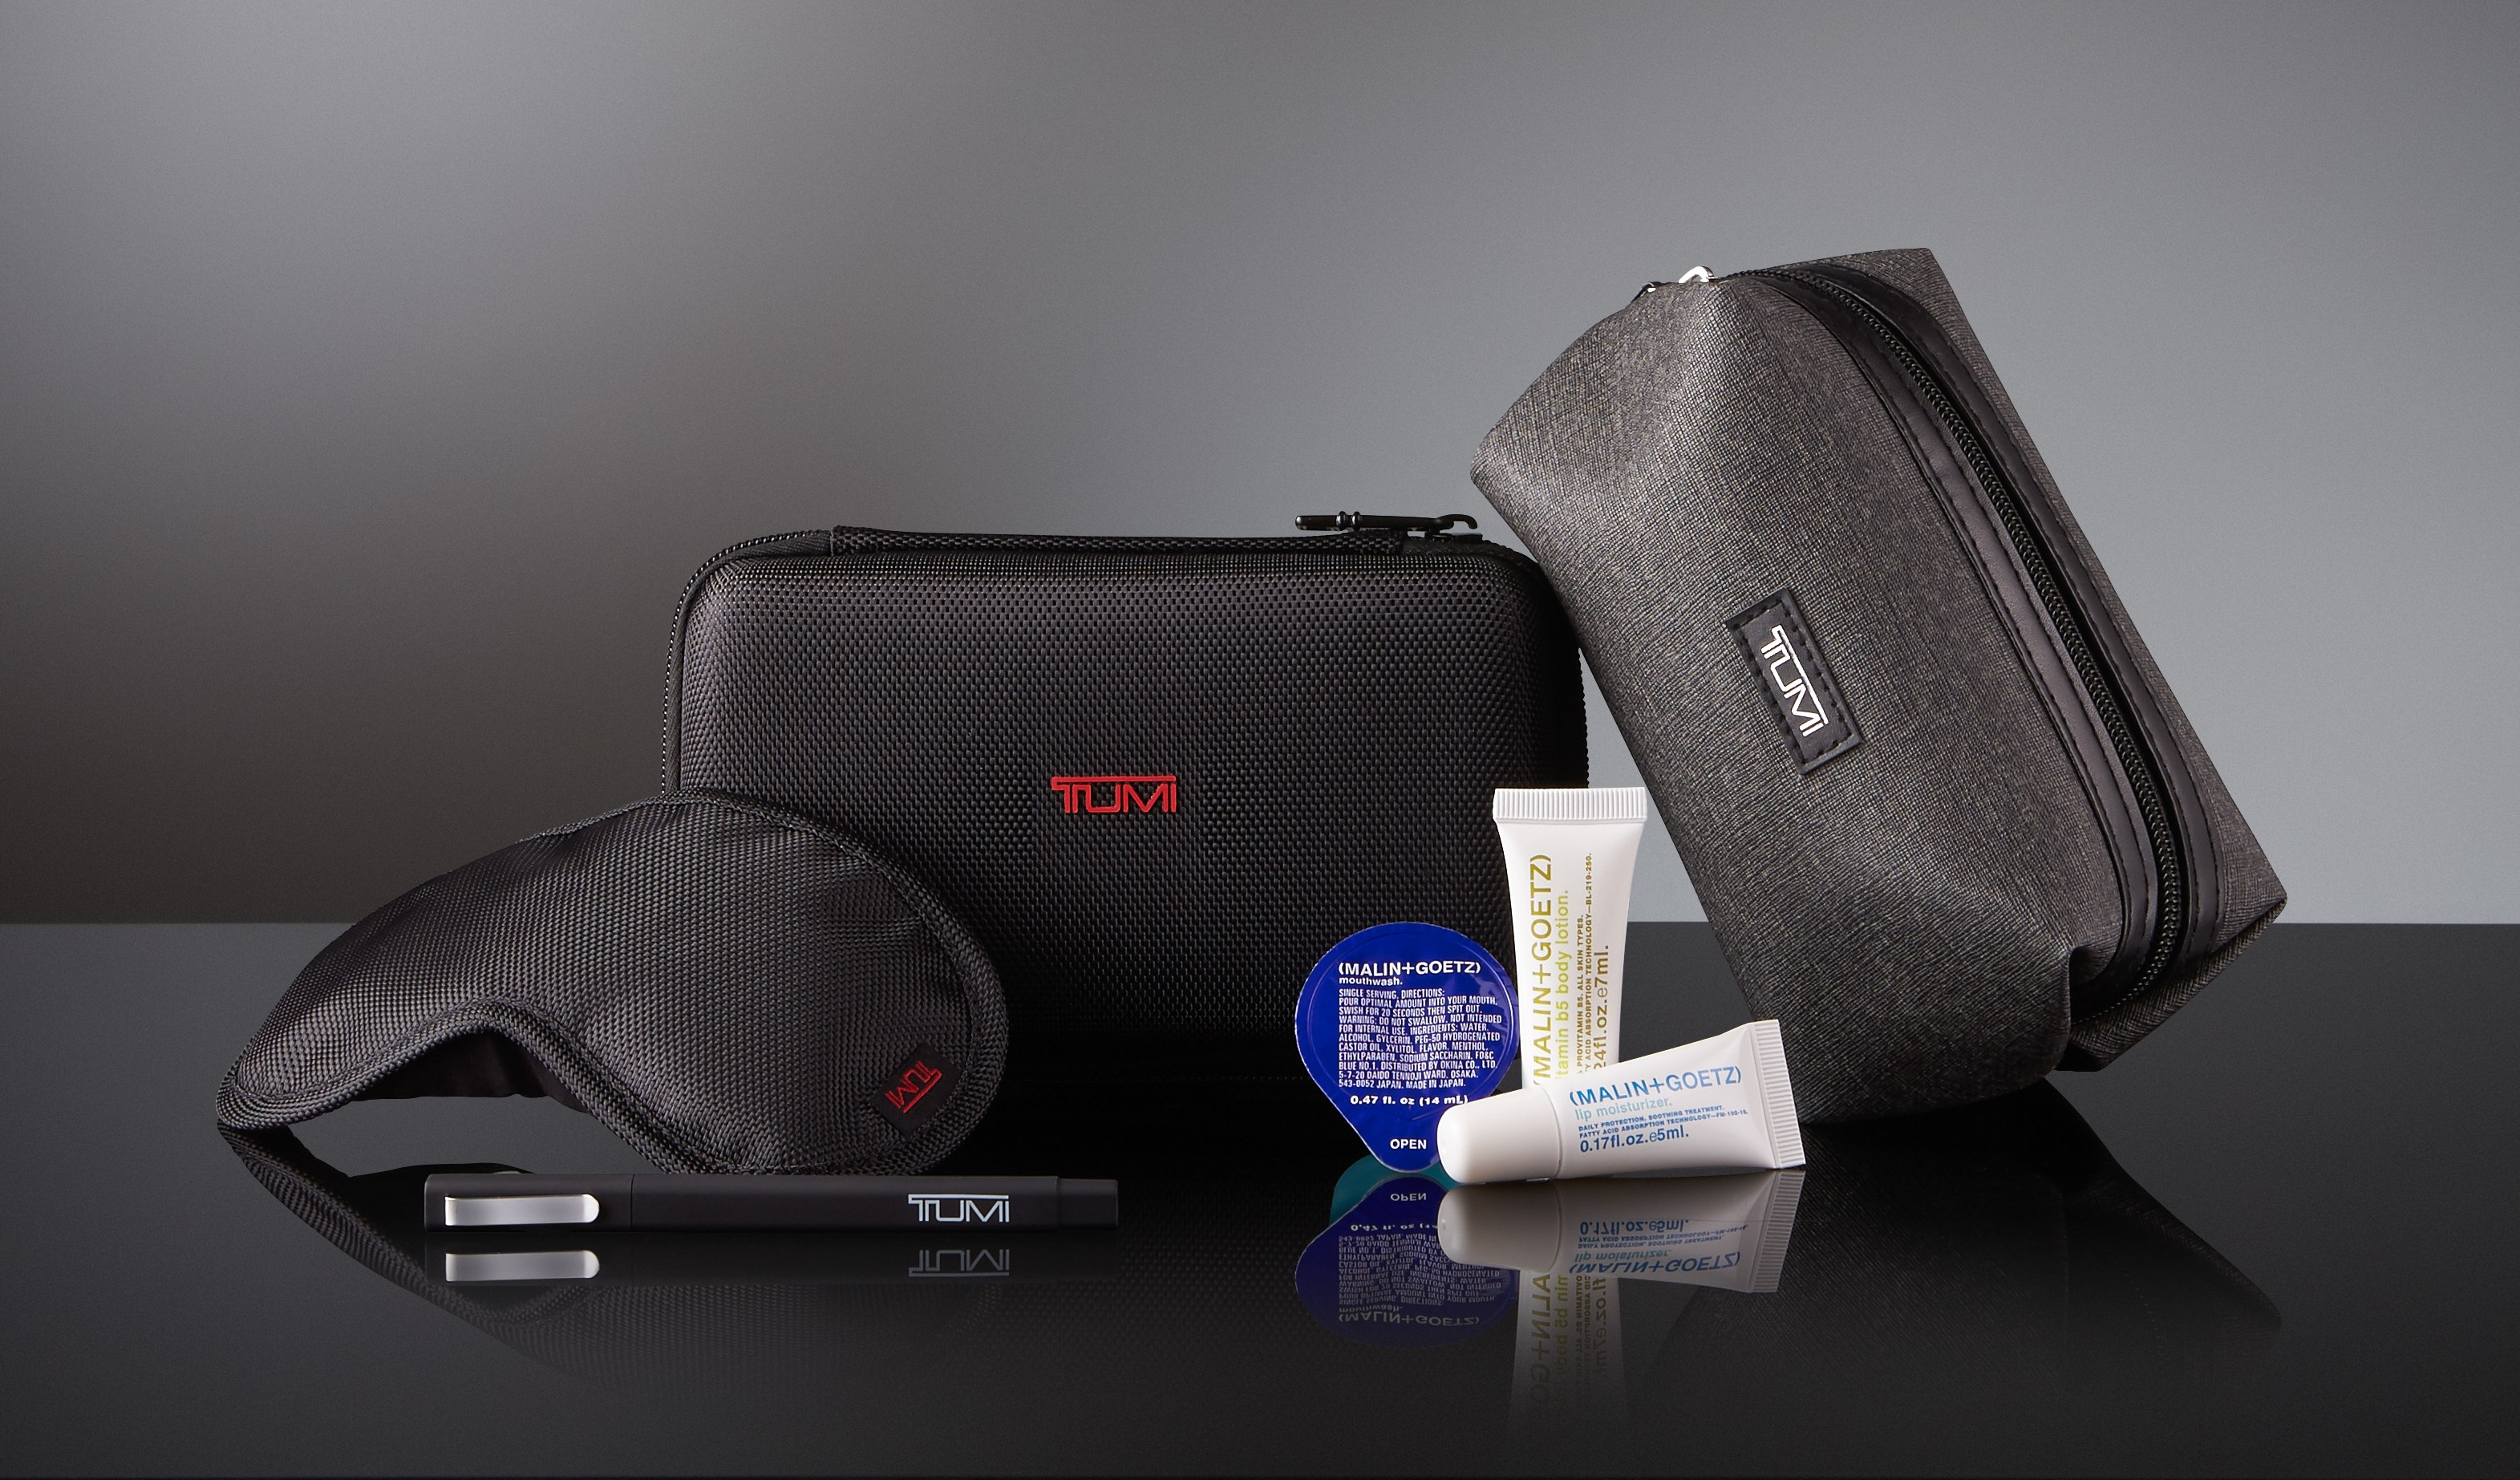 Delta's new amenity kits for DeltaOne